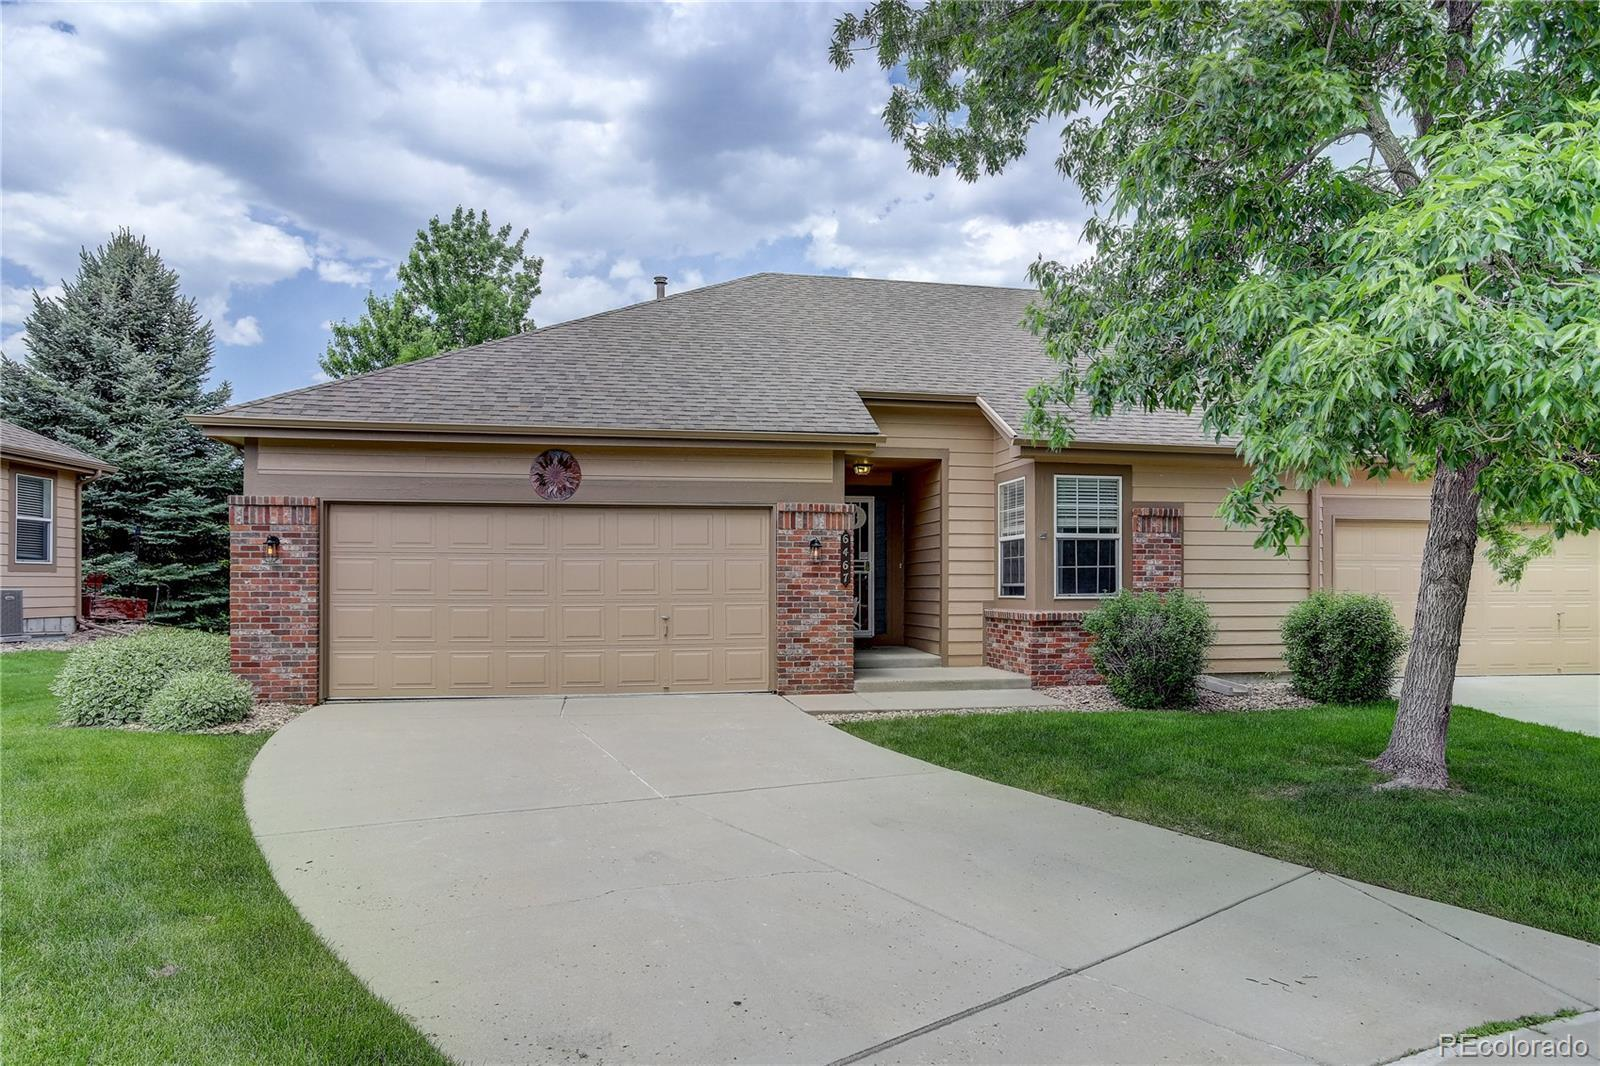 6467 Orion Way, Arvada, CO 80007 - #: 7835681